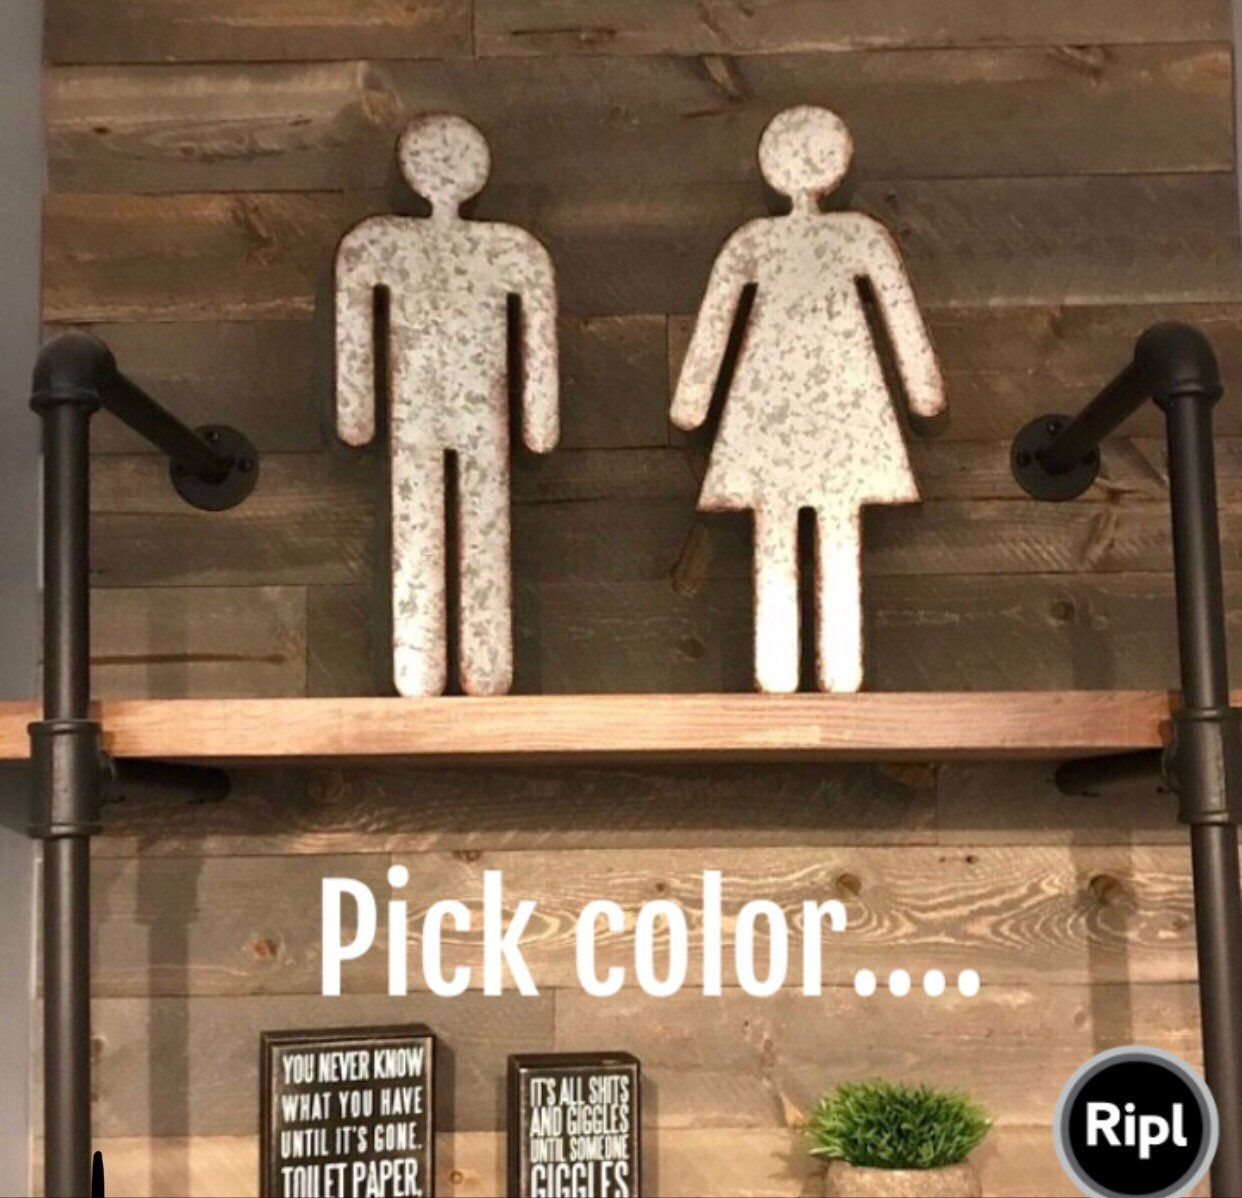 His And Hers Bathroom Sign Boy And Girl Bathroom Sign Metal